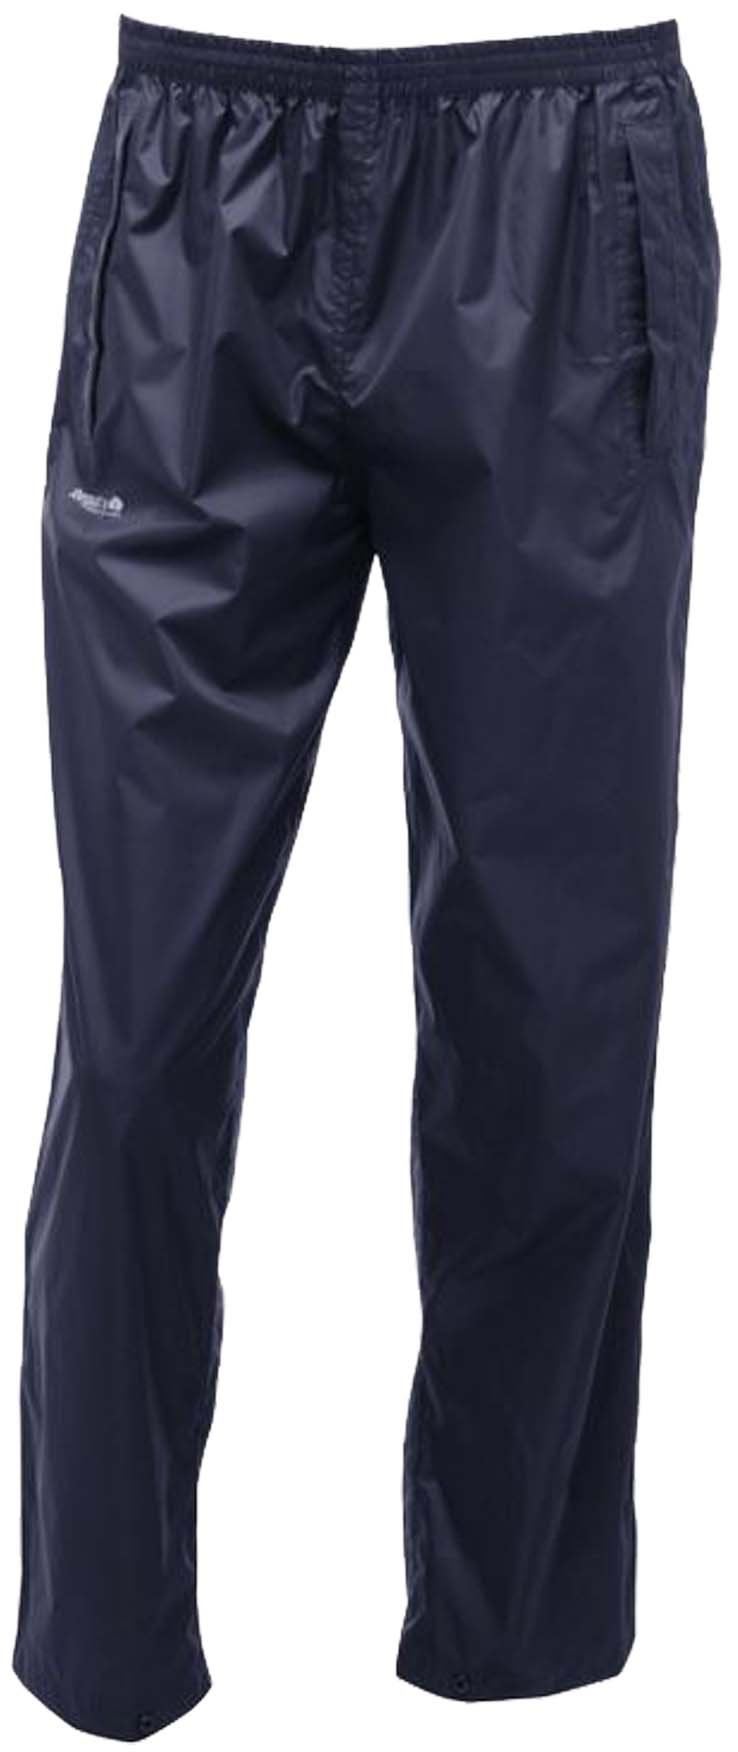 61oJM9%2B6j1L - Regatta 100% Waterproof Over Trousers | Taped Seams